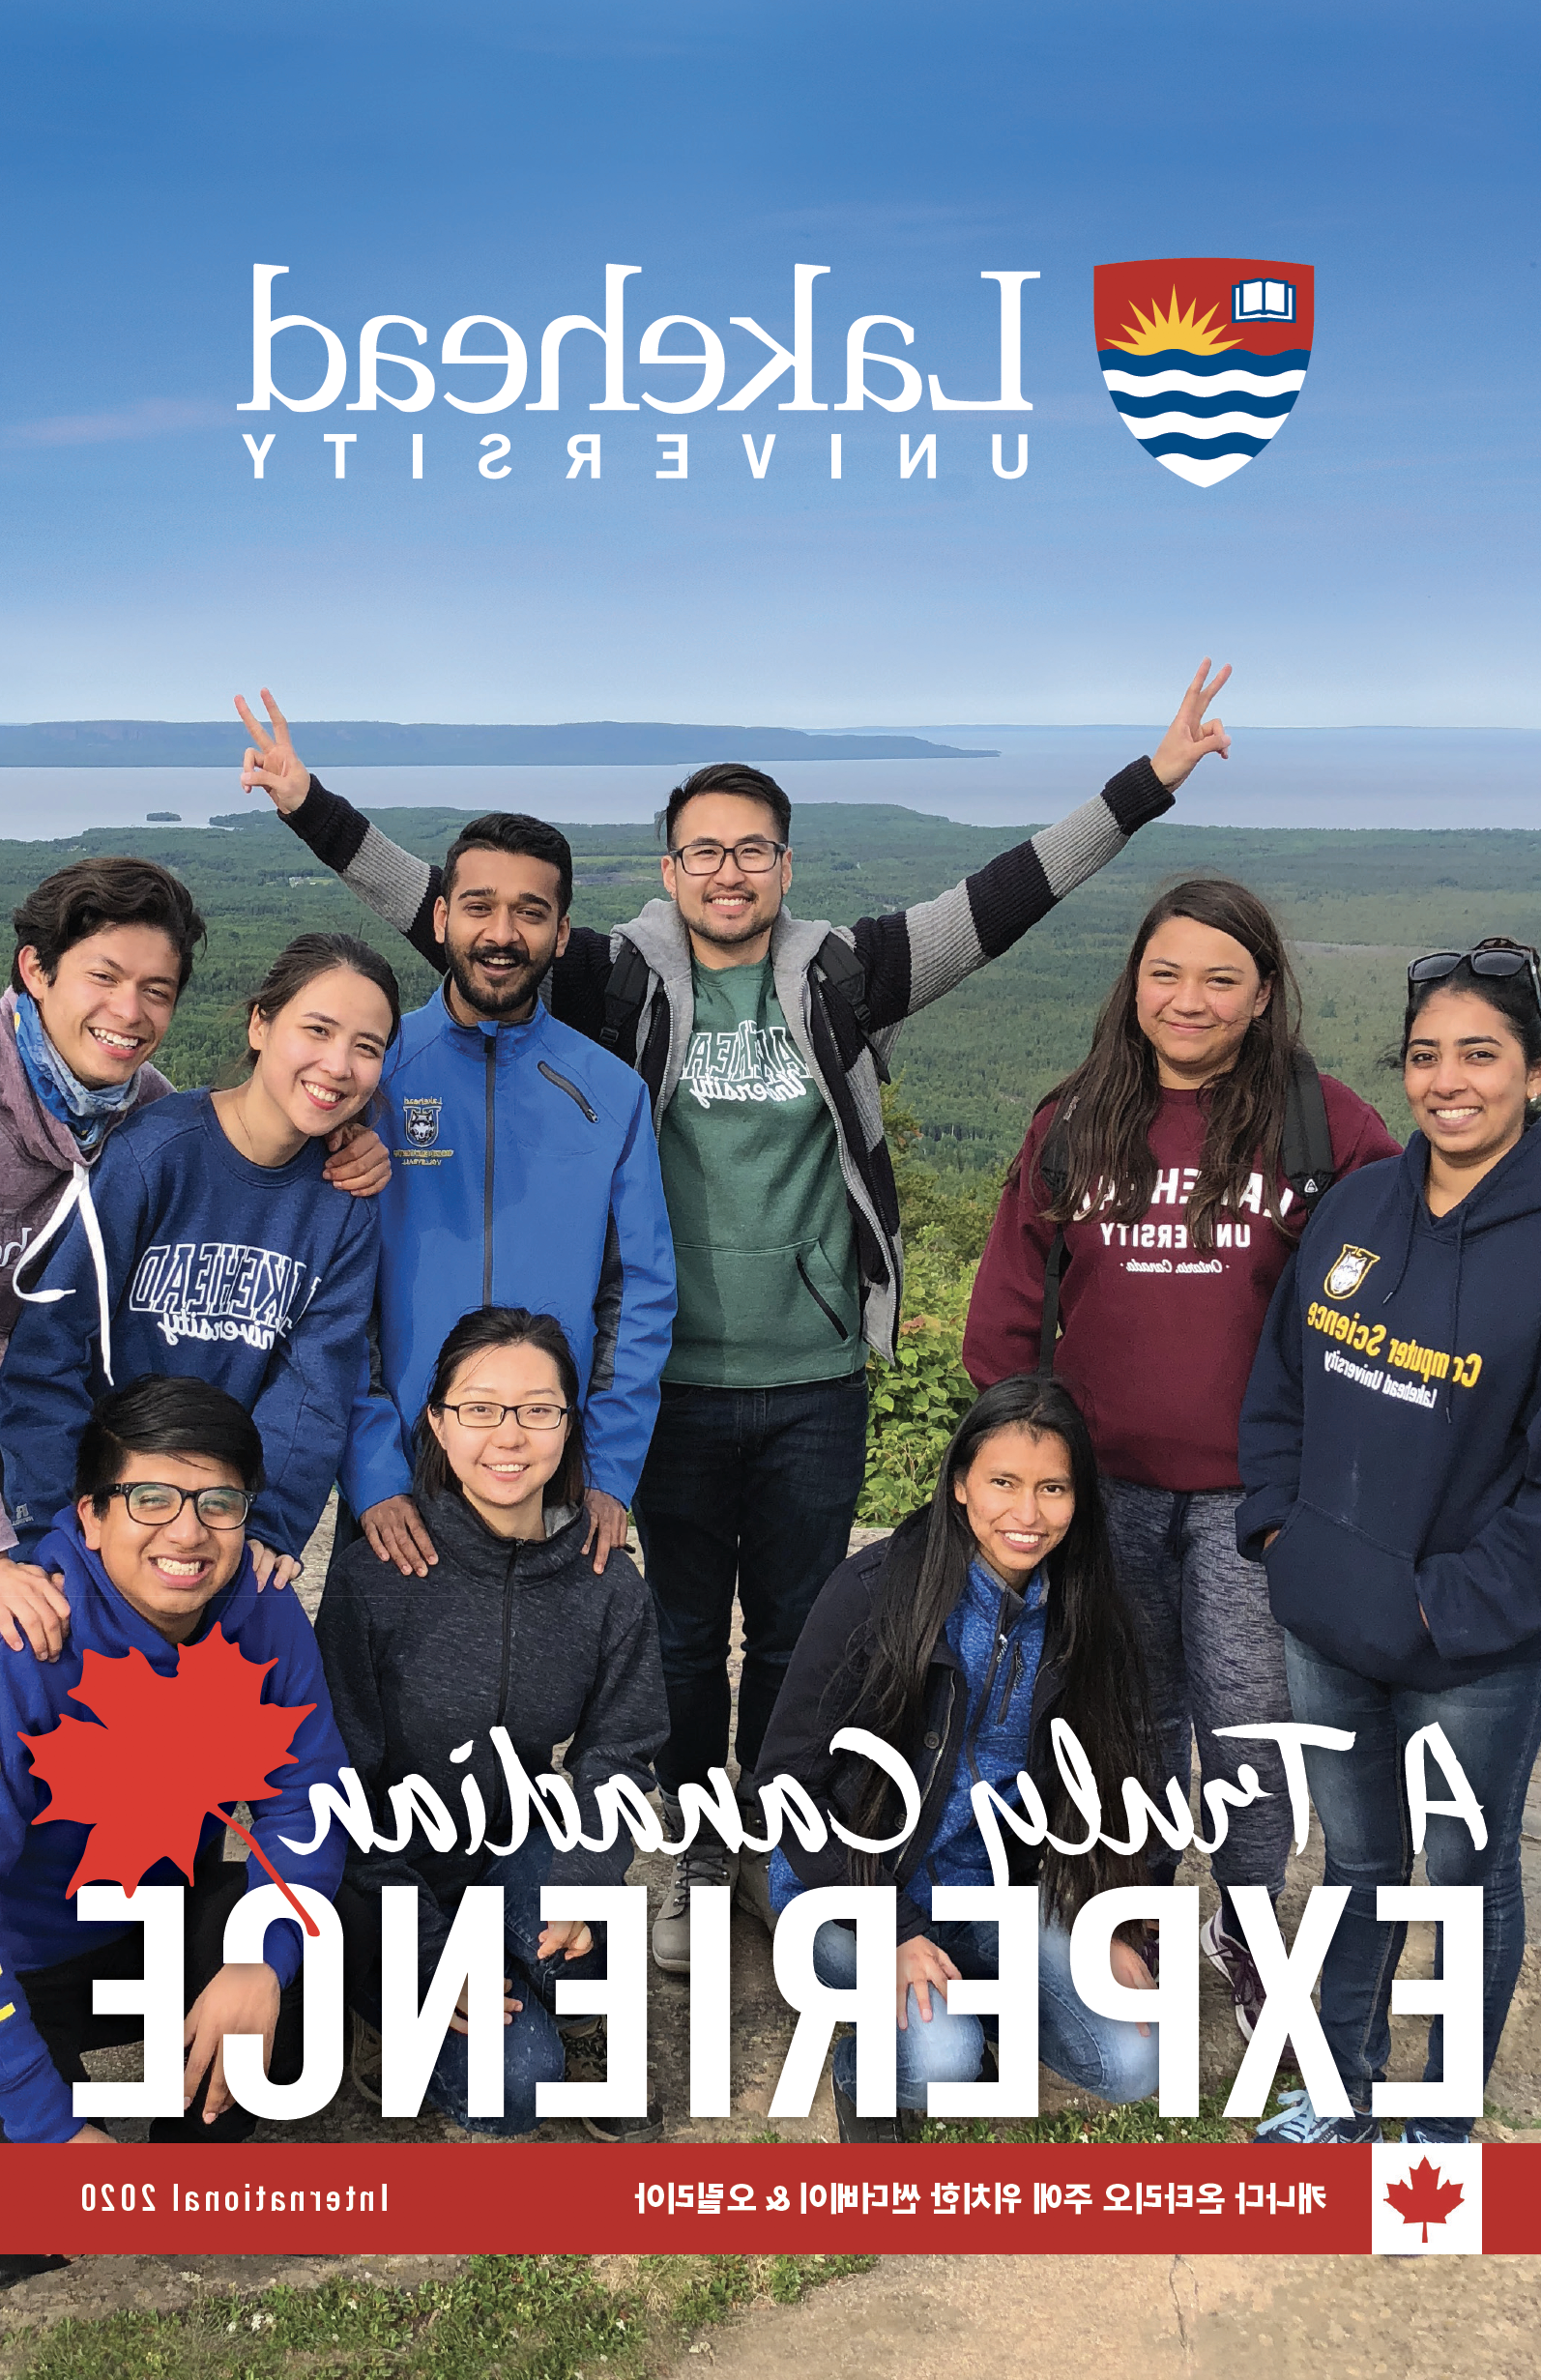 The cover of the 2019 Lakehead 国际 Brochure in Korean.